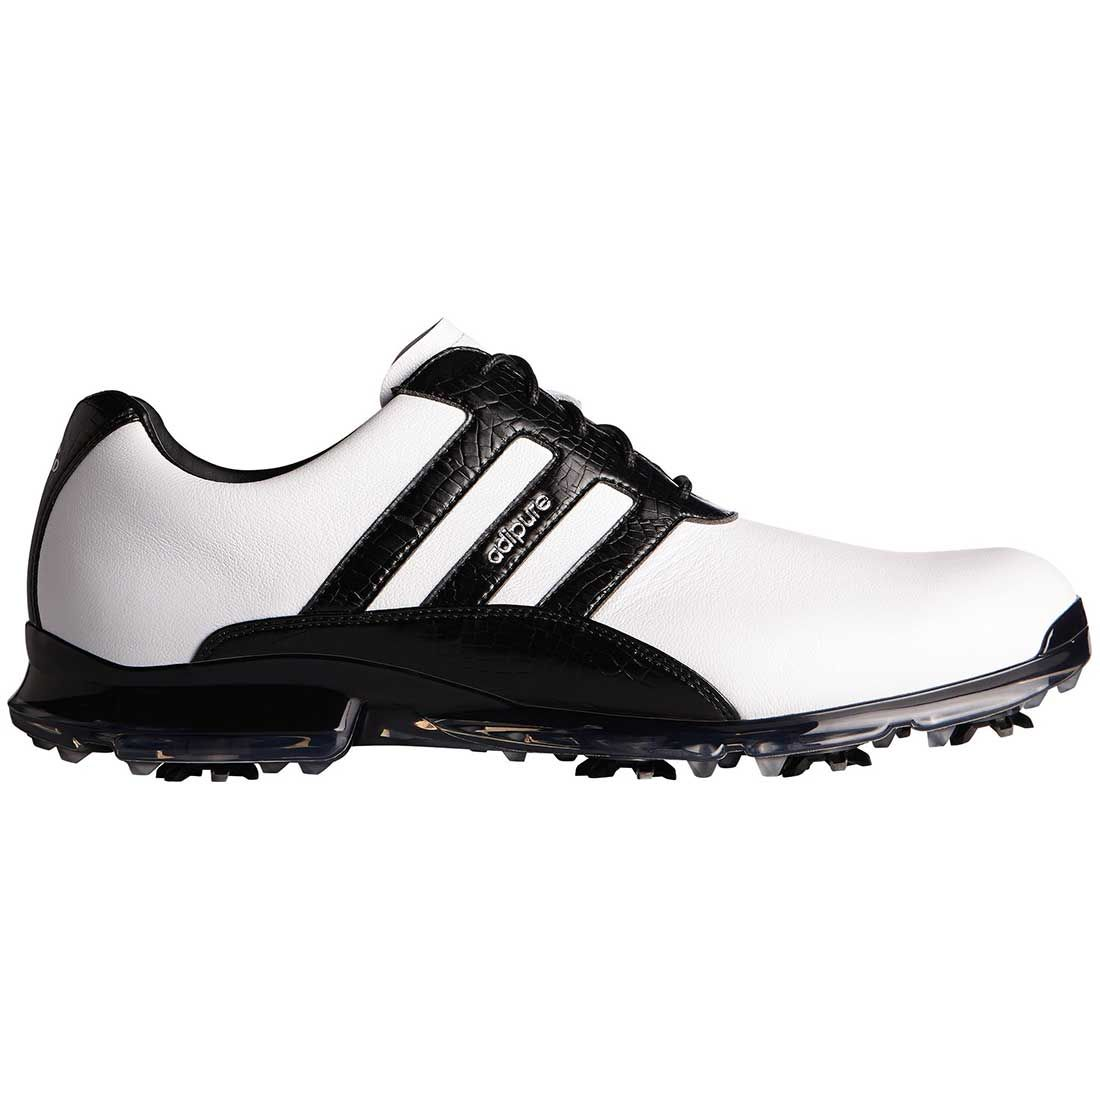 Buy Adidas AdiPure Classic Golf Shoes White/Black | Golf Discount